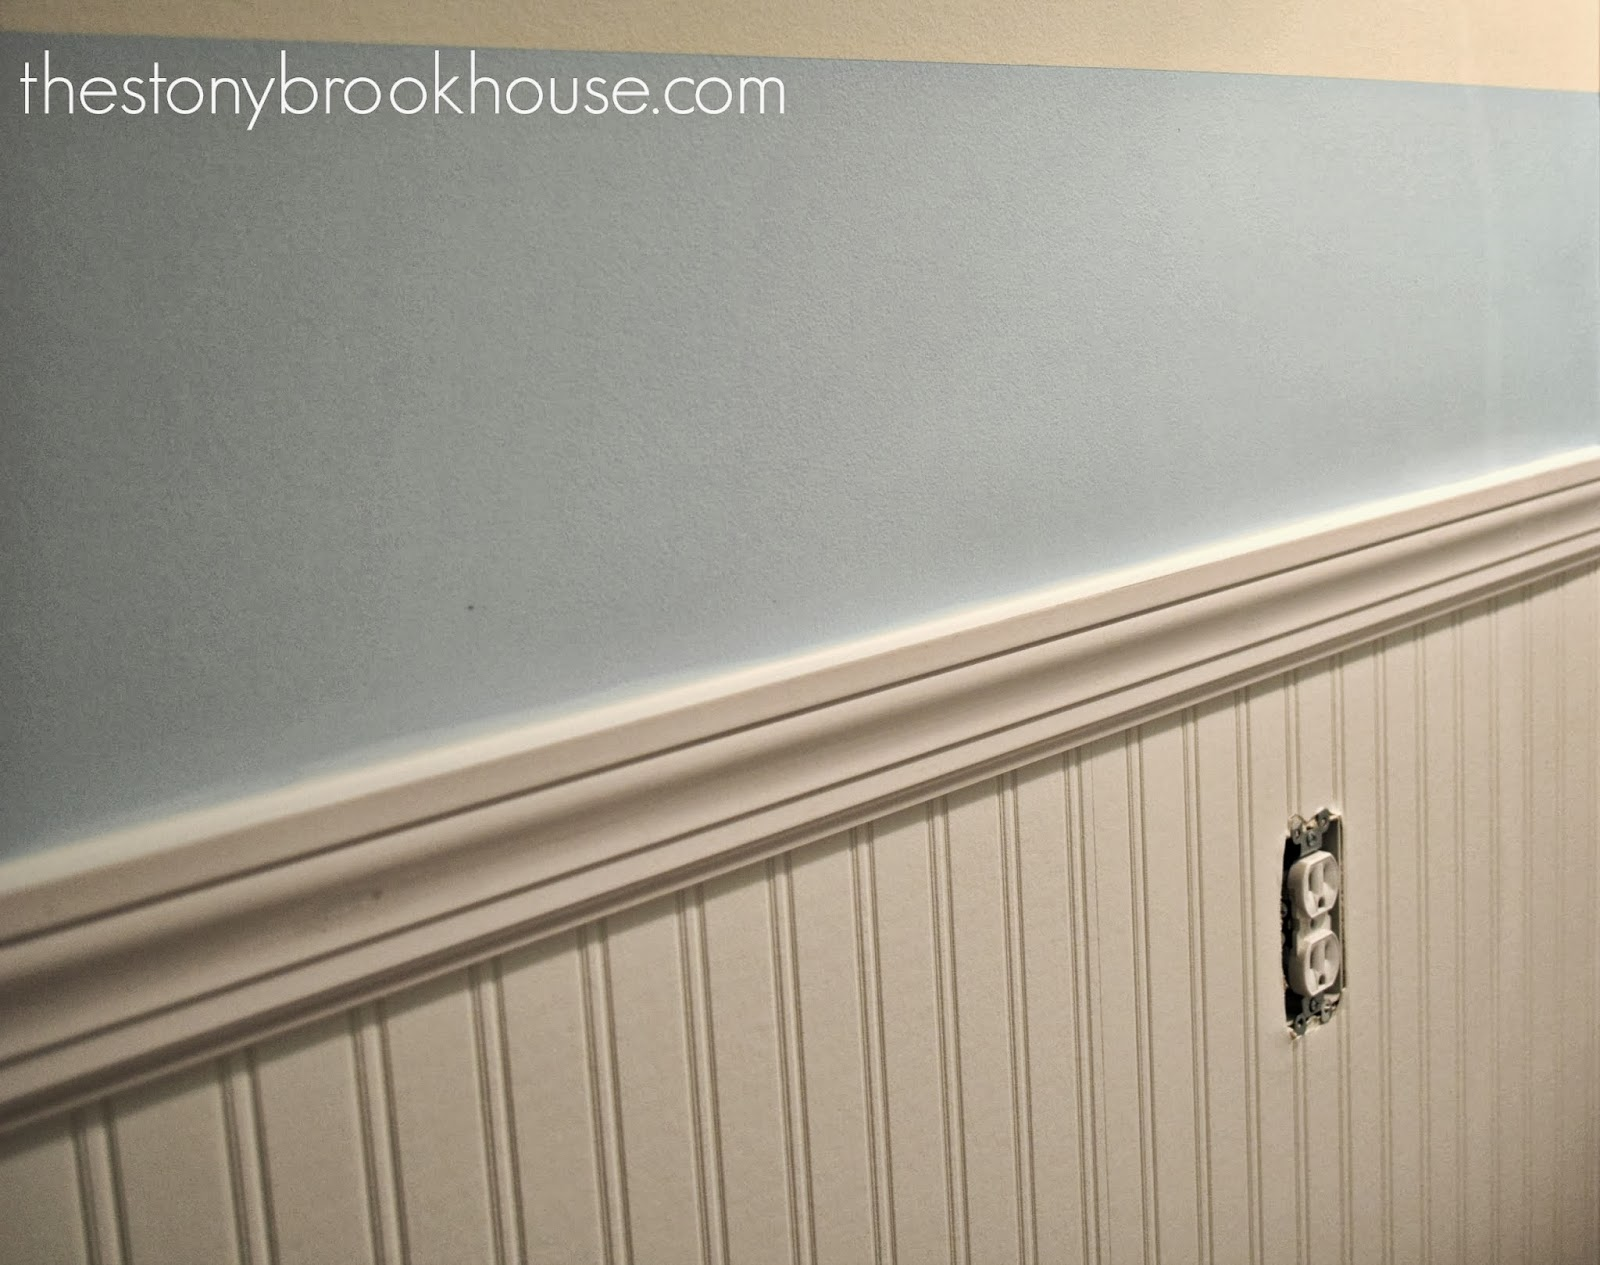 install beadboard wallpaper - photo #21